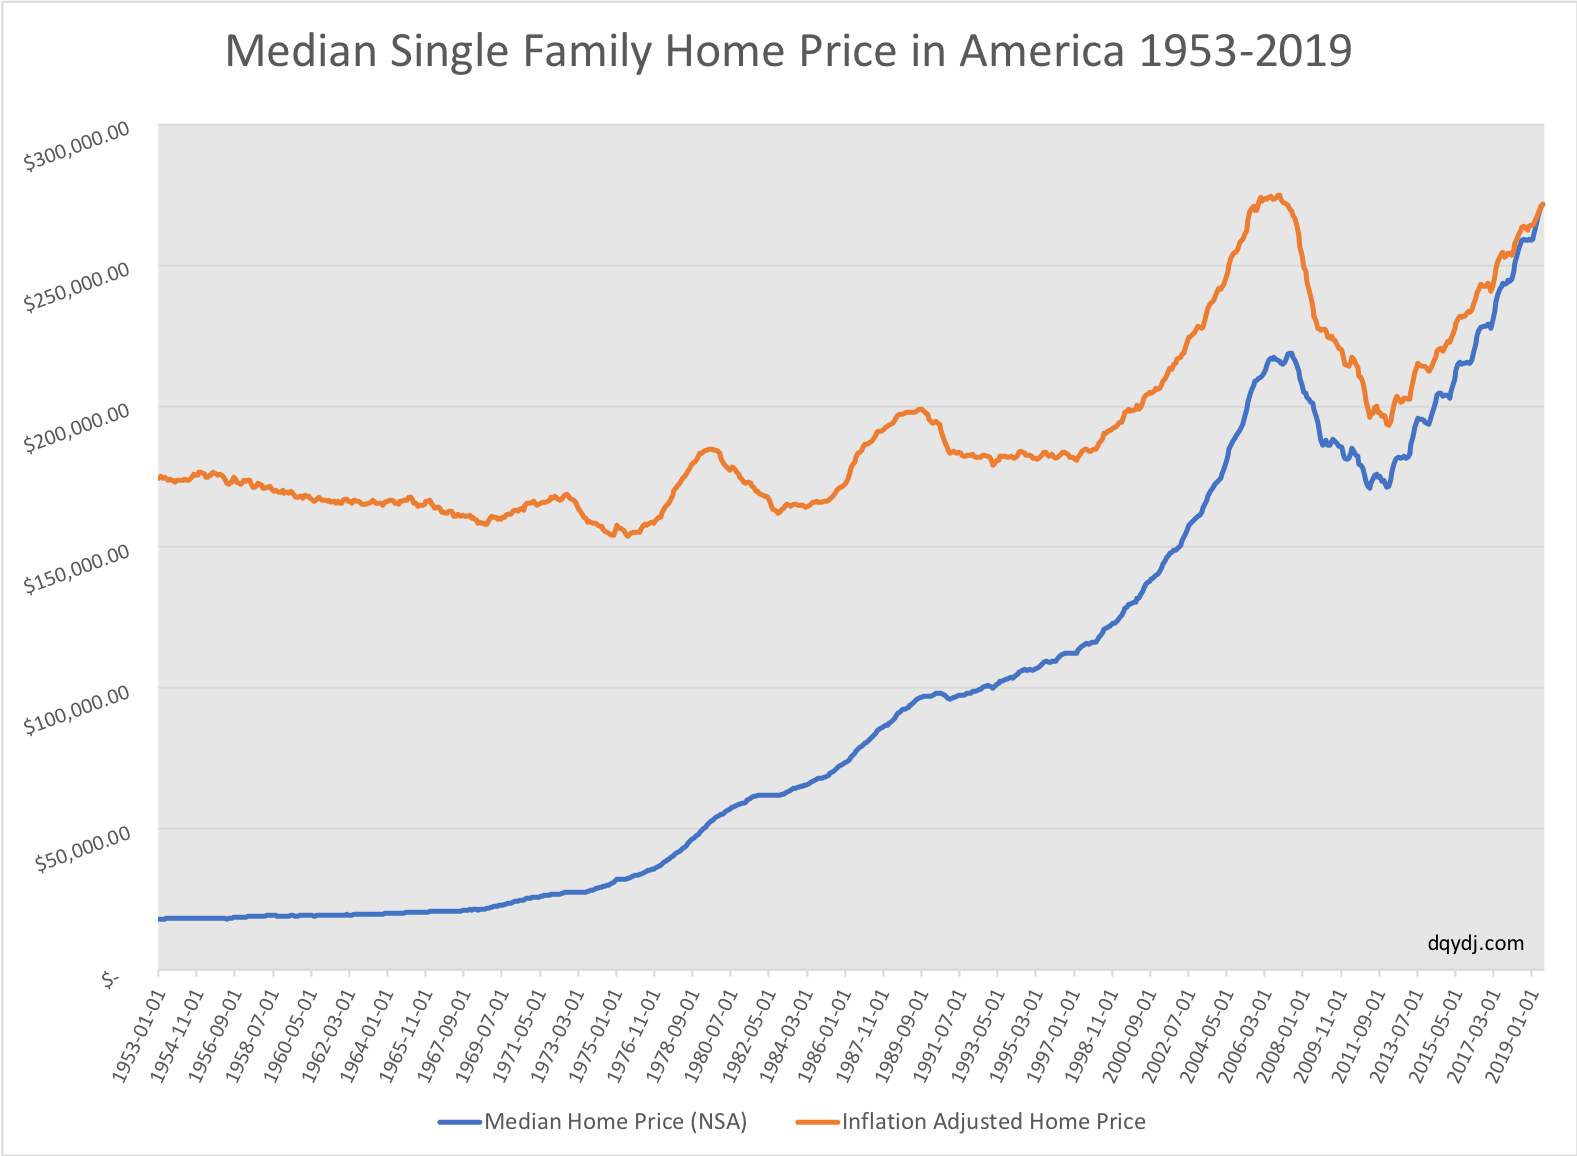 Historical median home value in the US, nominal and real